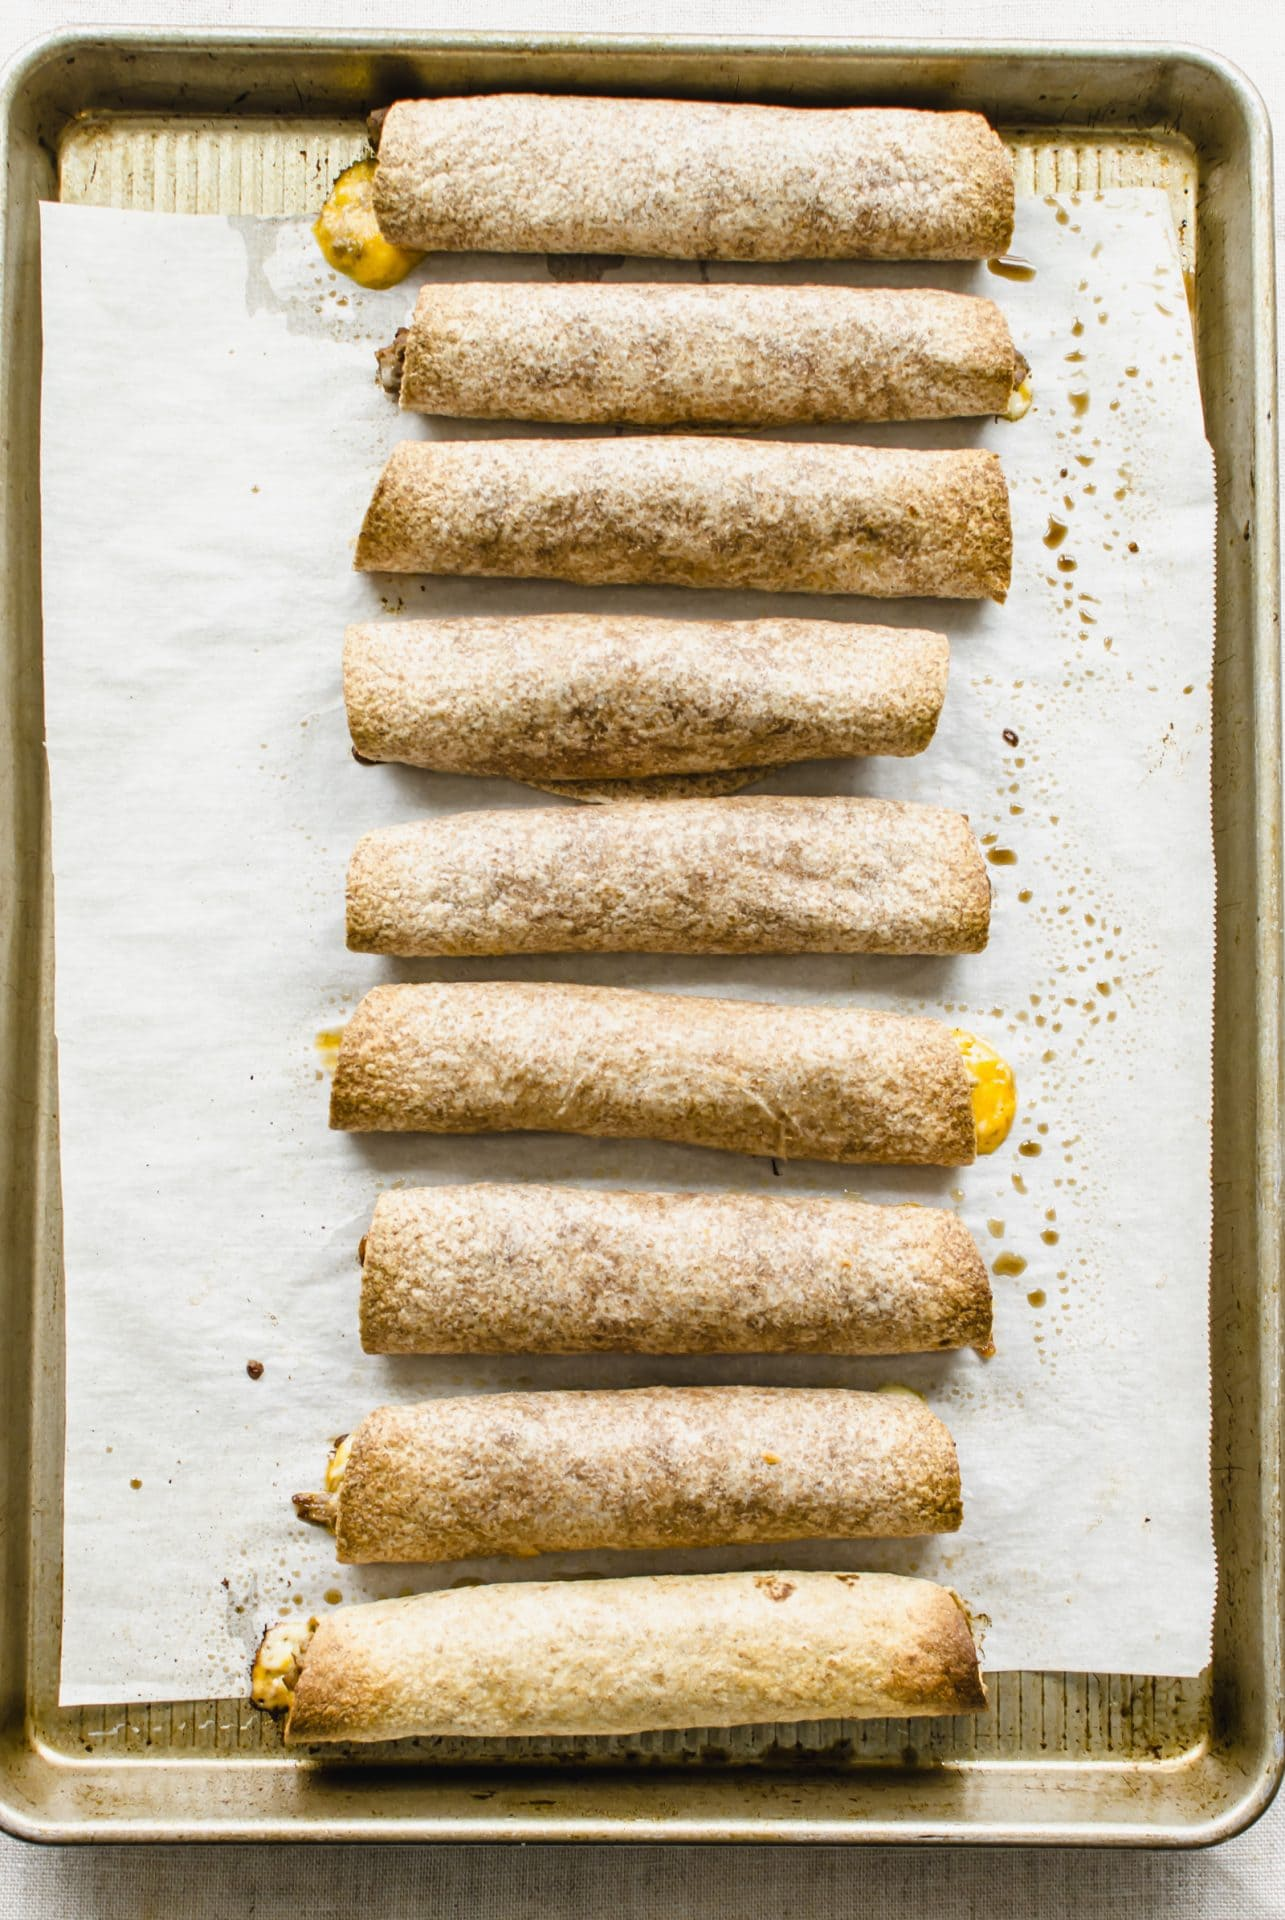 Baked beef taquitos on a sheet pan lined with parchment paper.